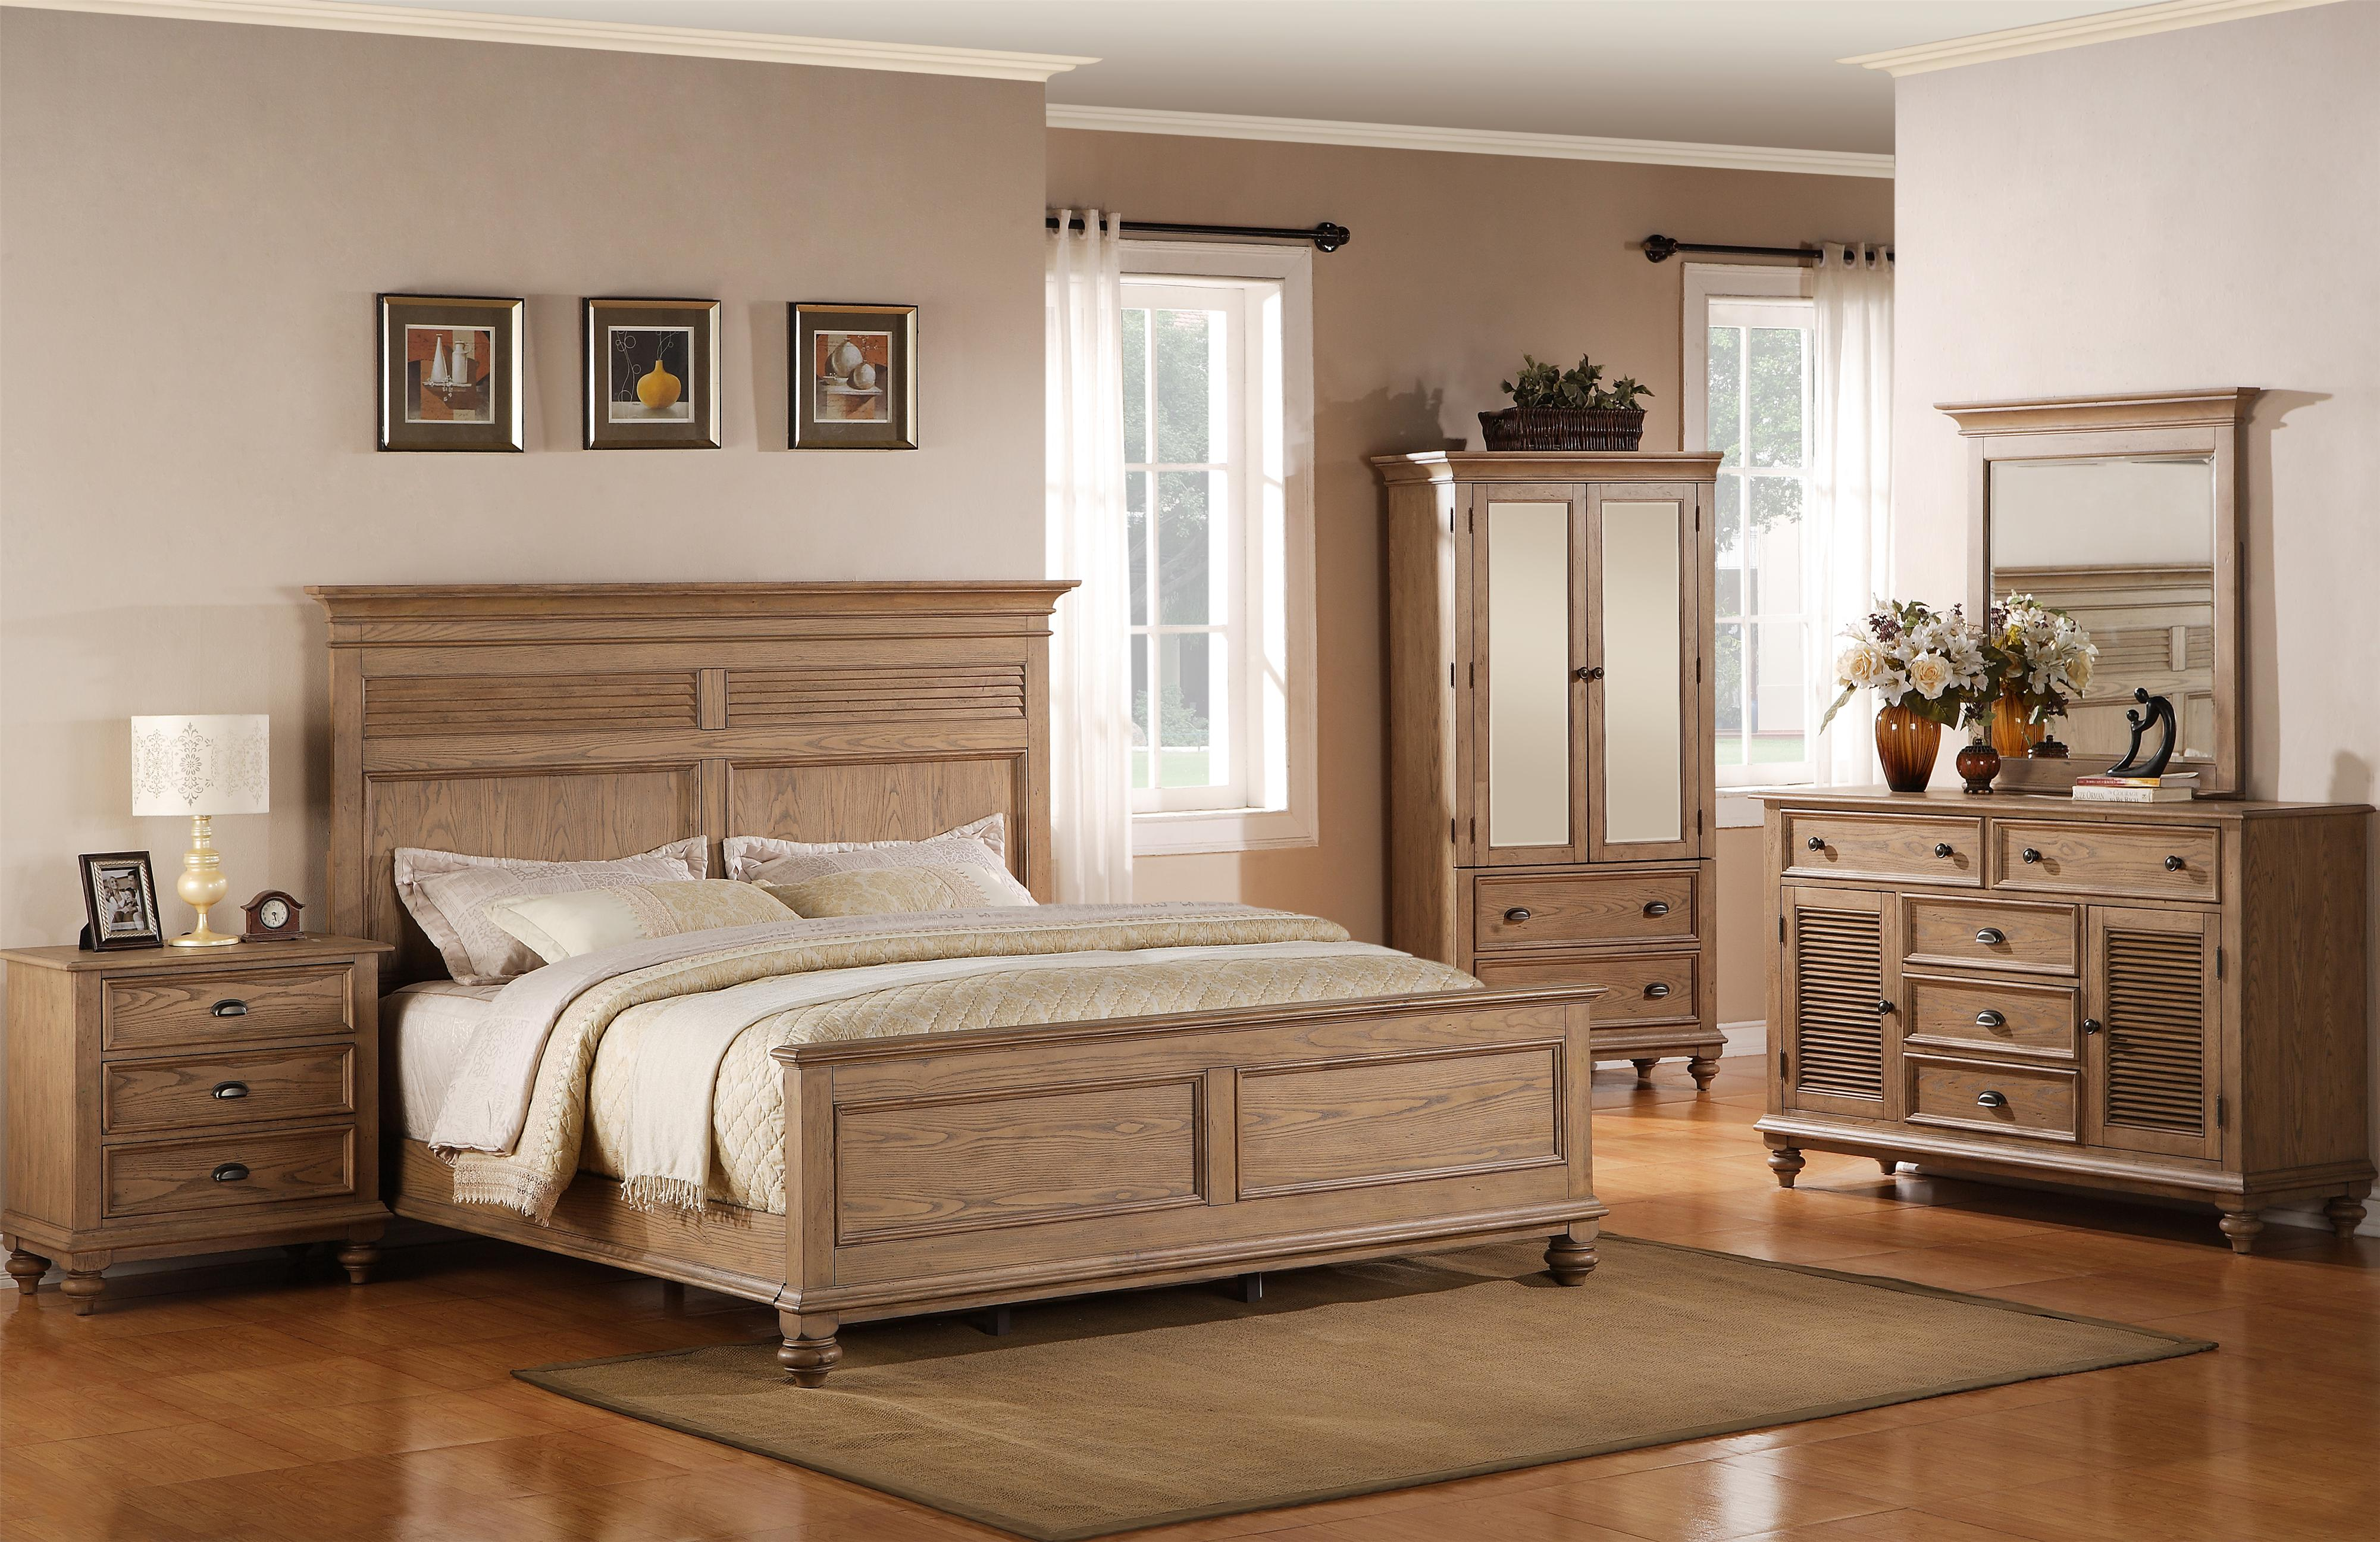 Riverside Furniture Coventry Full/Queen Bedroom Group - Item Number: 32400 F Q Bedroom Group 1